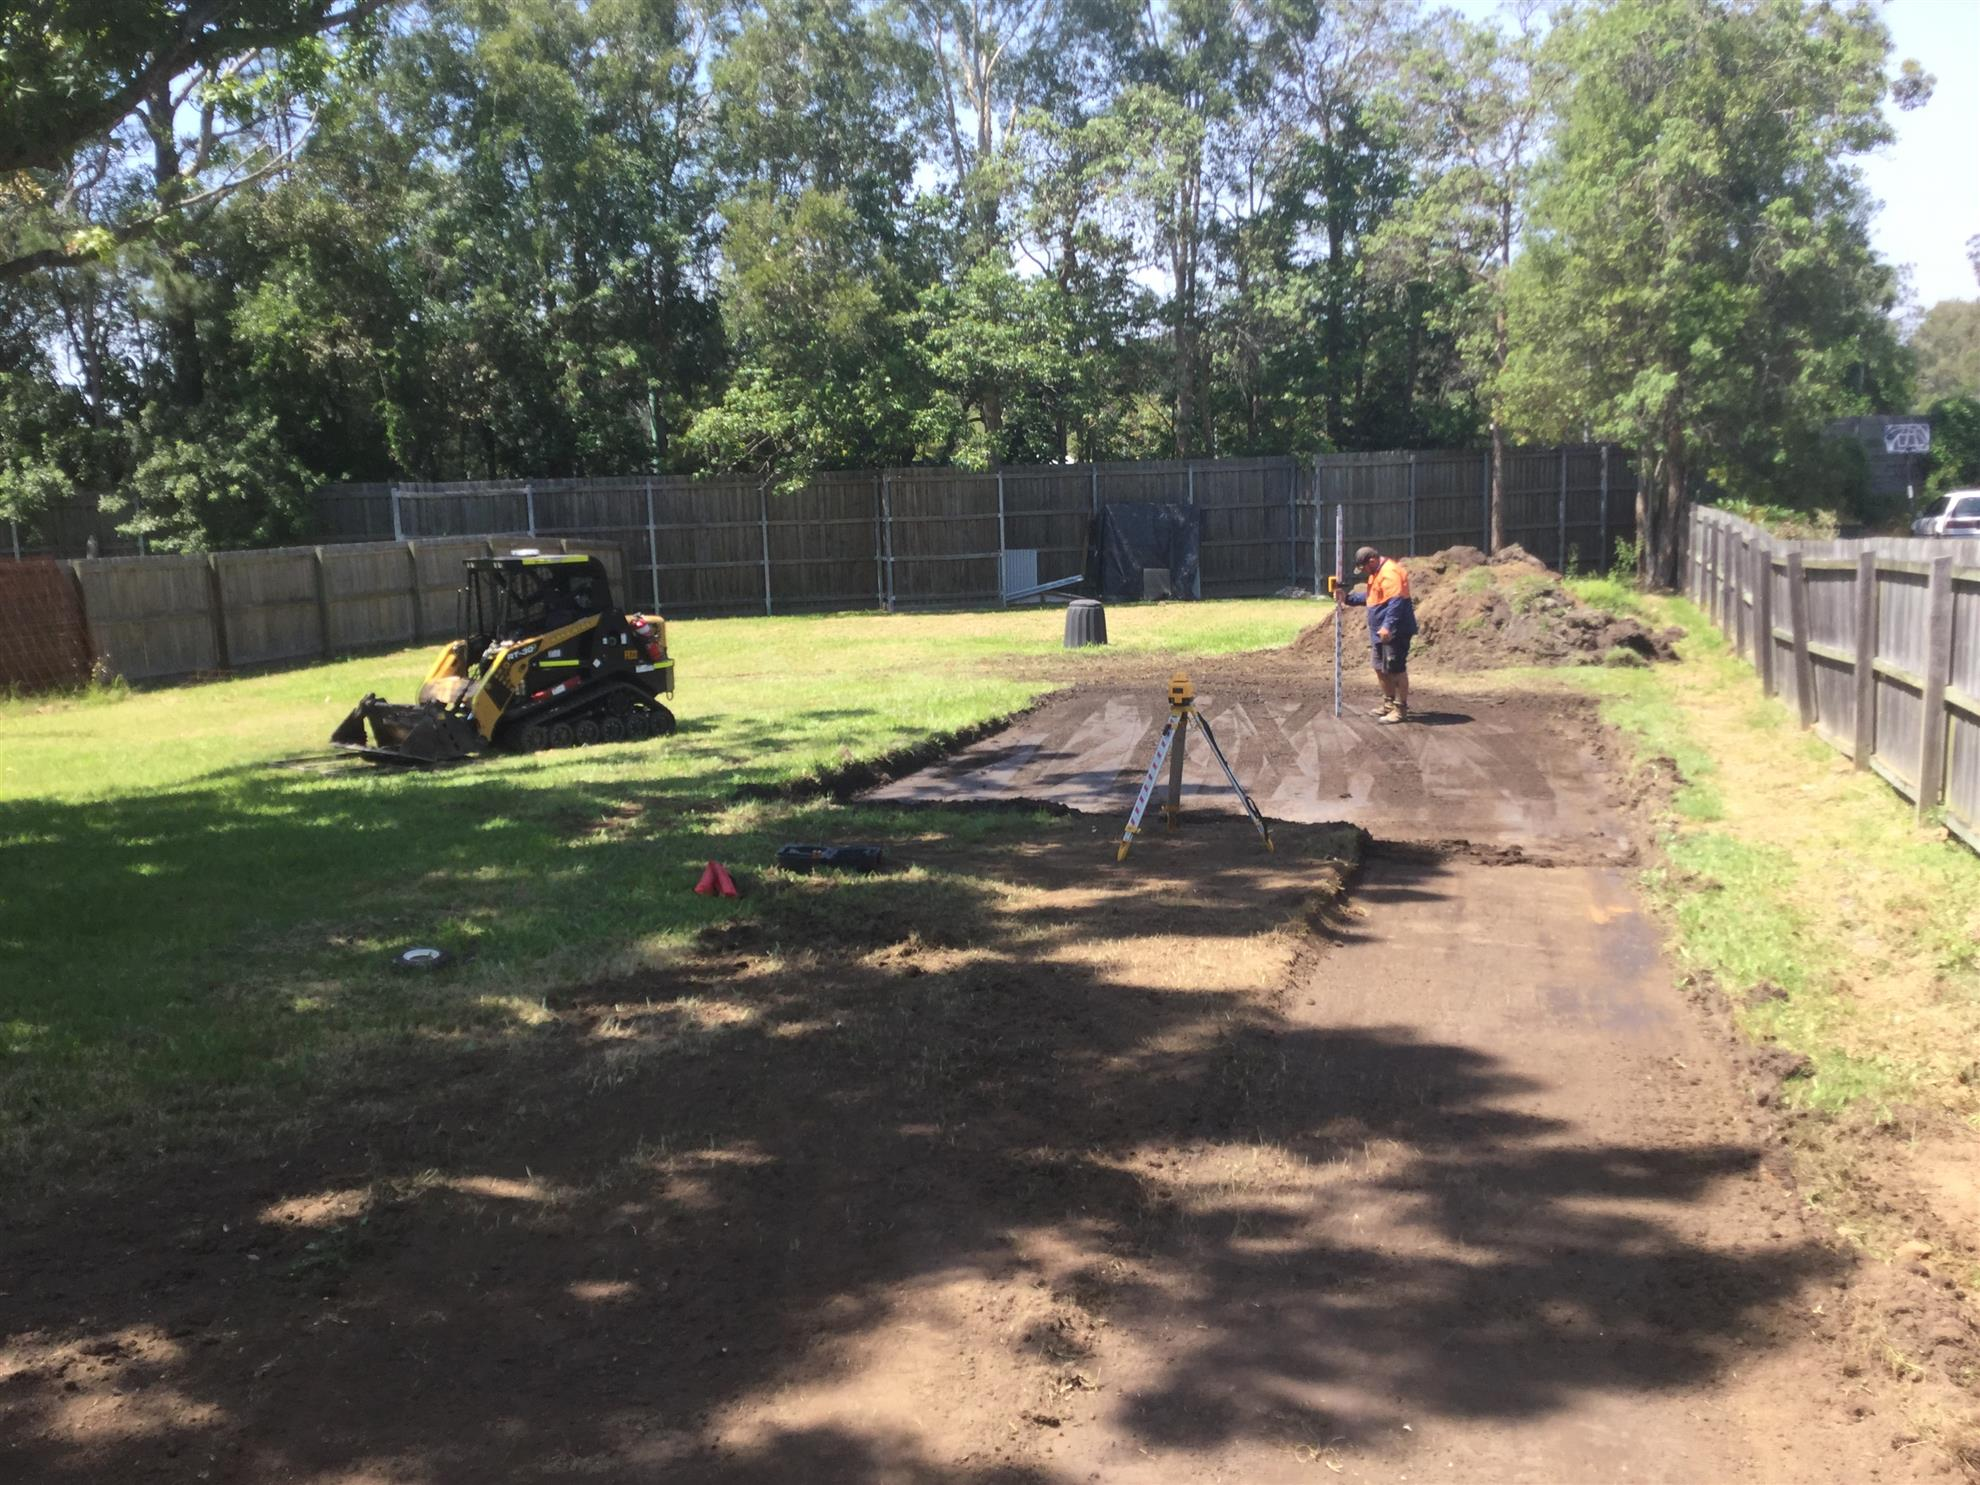 Clearing the path and ball court area...